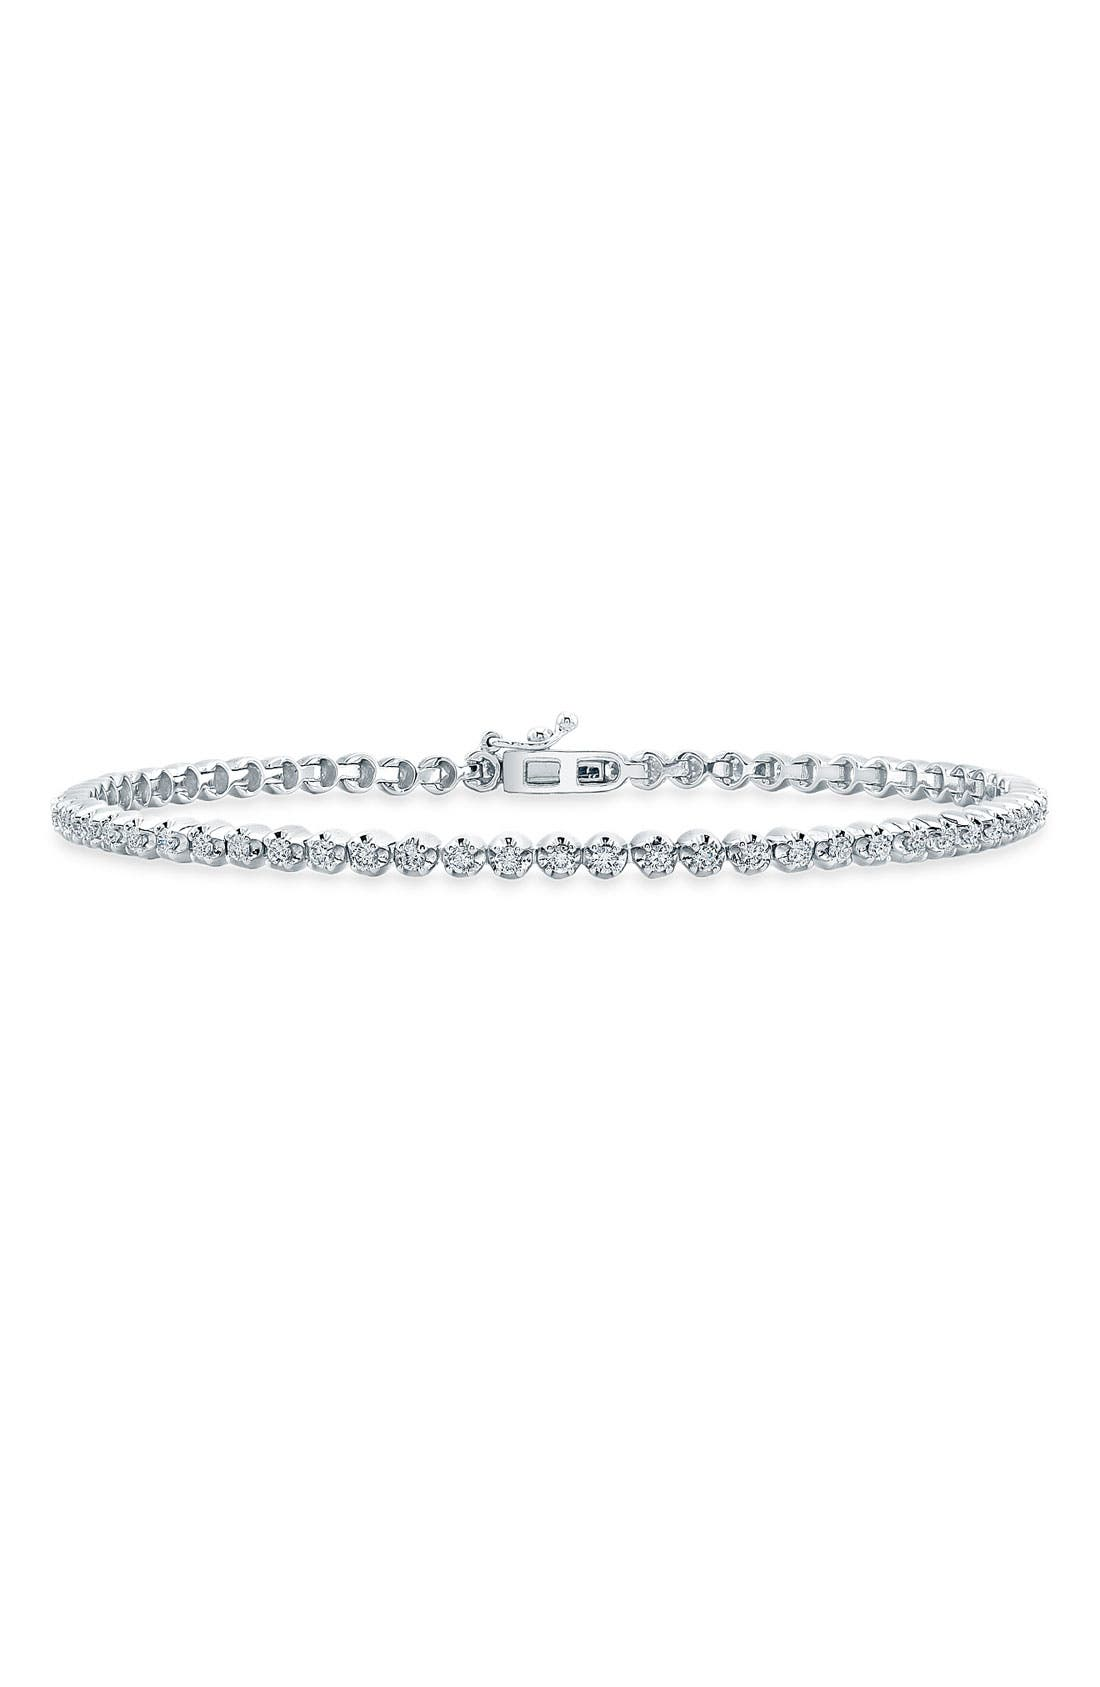 Alternate Image 1 Selected - Bony Levy Diamond Line Bracelet (Nordstrom Exclusive) (Limited Edition)